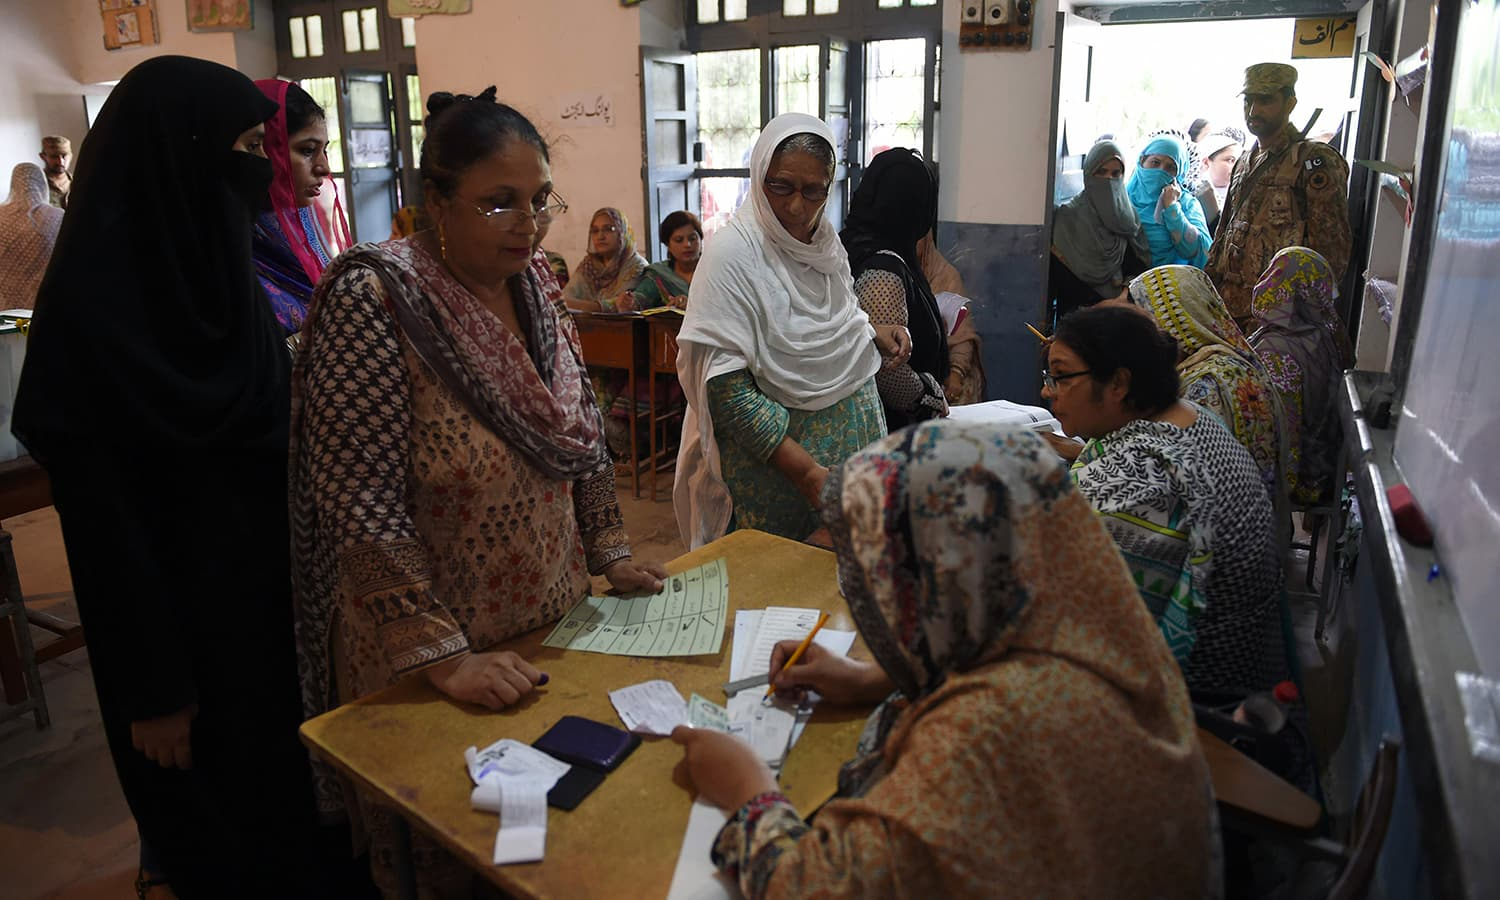 Voters line up to cast their ballot at a polling station in Rawalpindi. — AFP